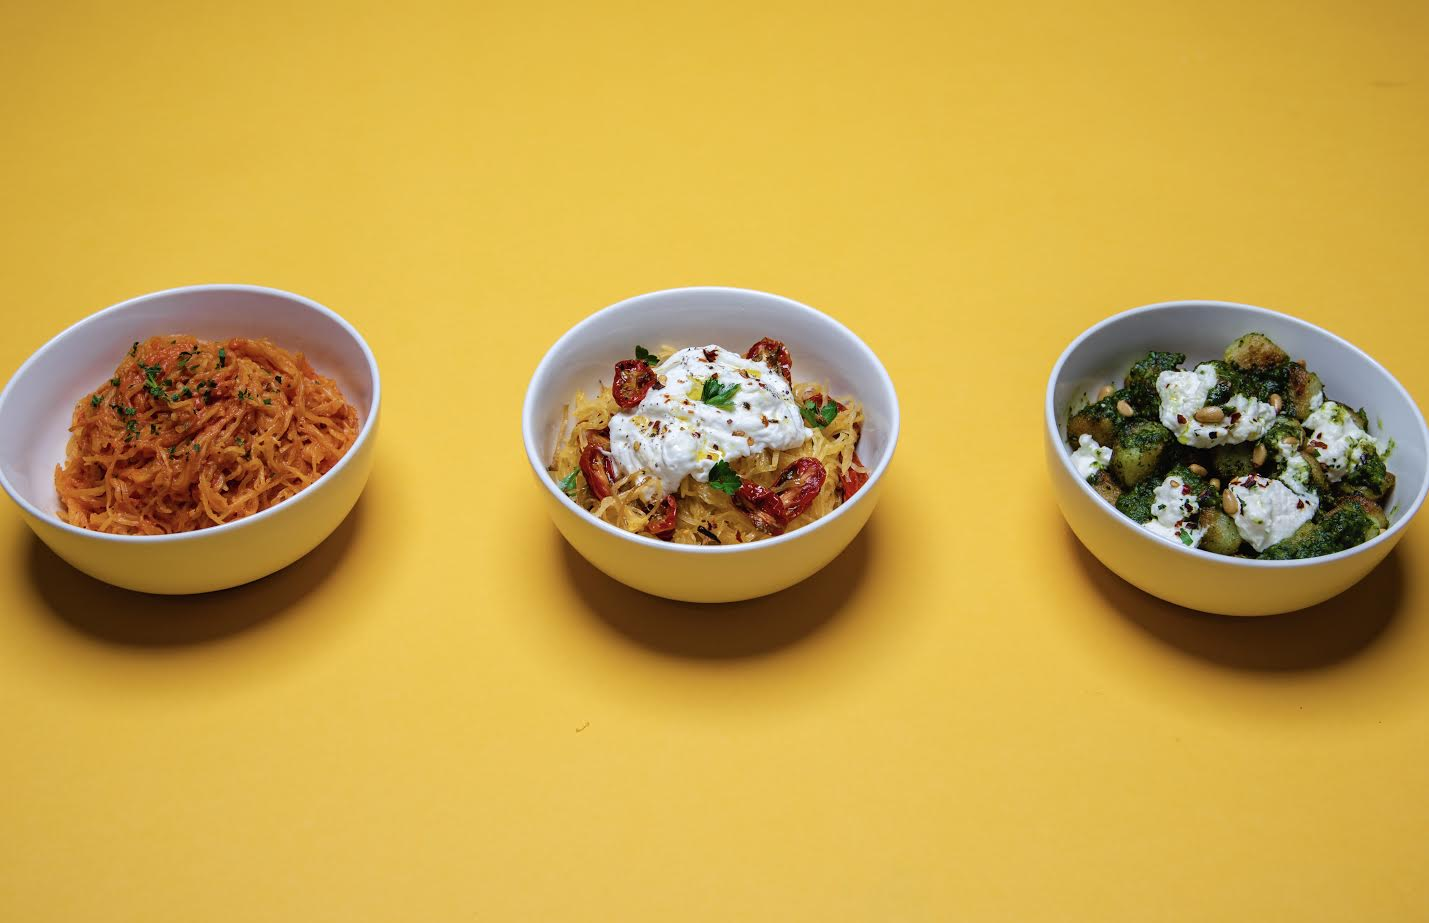 A yellow table shows off a trio of fake noodles in white bowls with sauce.